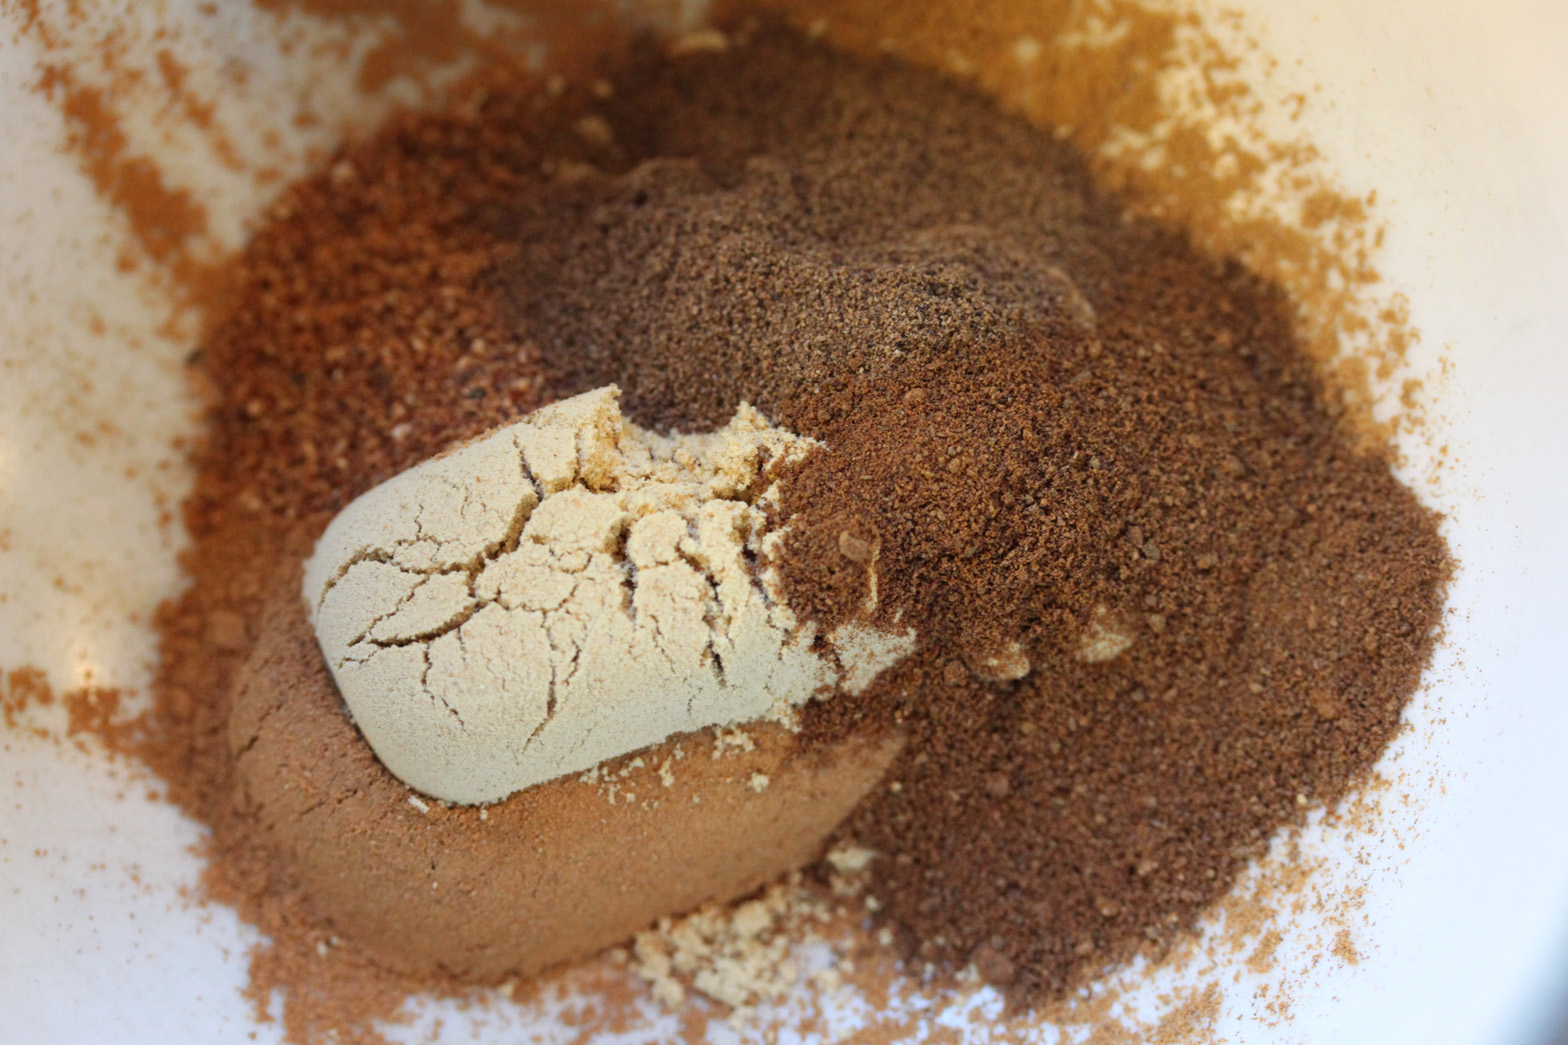 You know what's really easy? Making your own pumpkin pie spice.